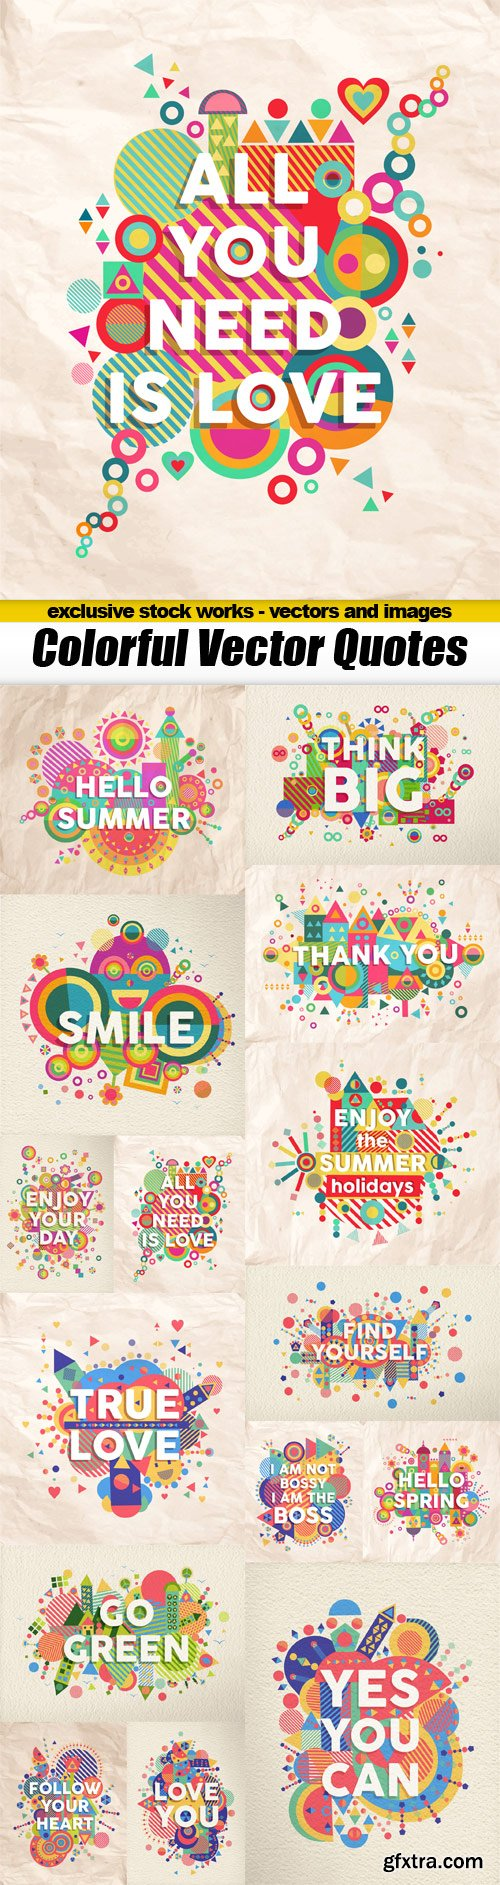 Colorful Vector Quotes - 15x EPS